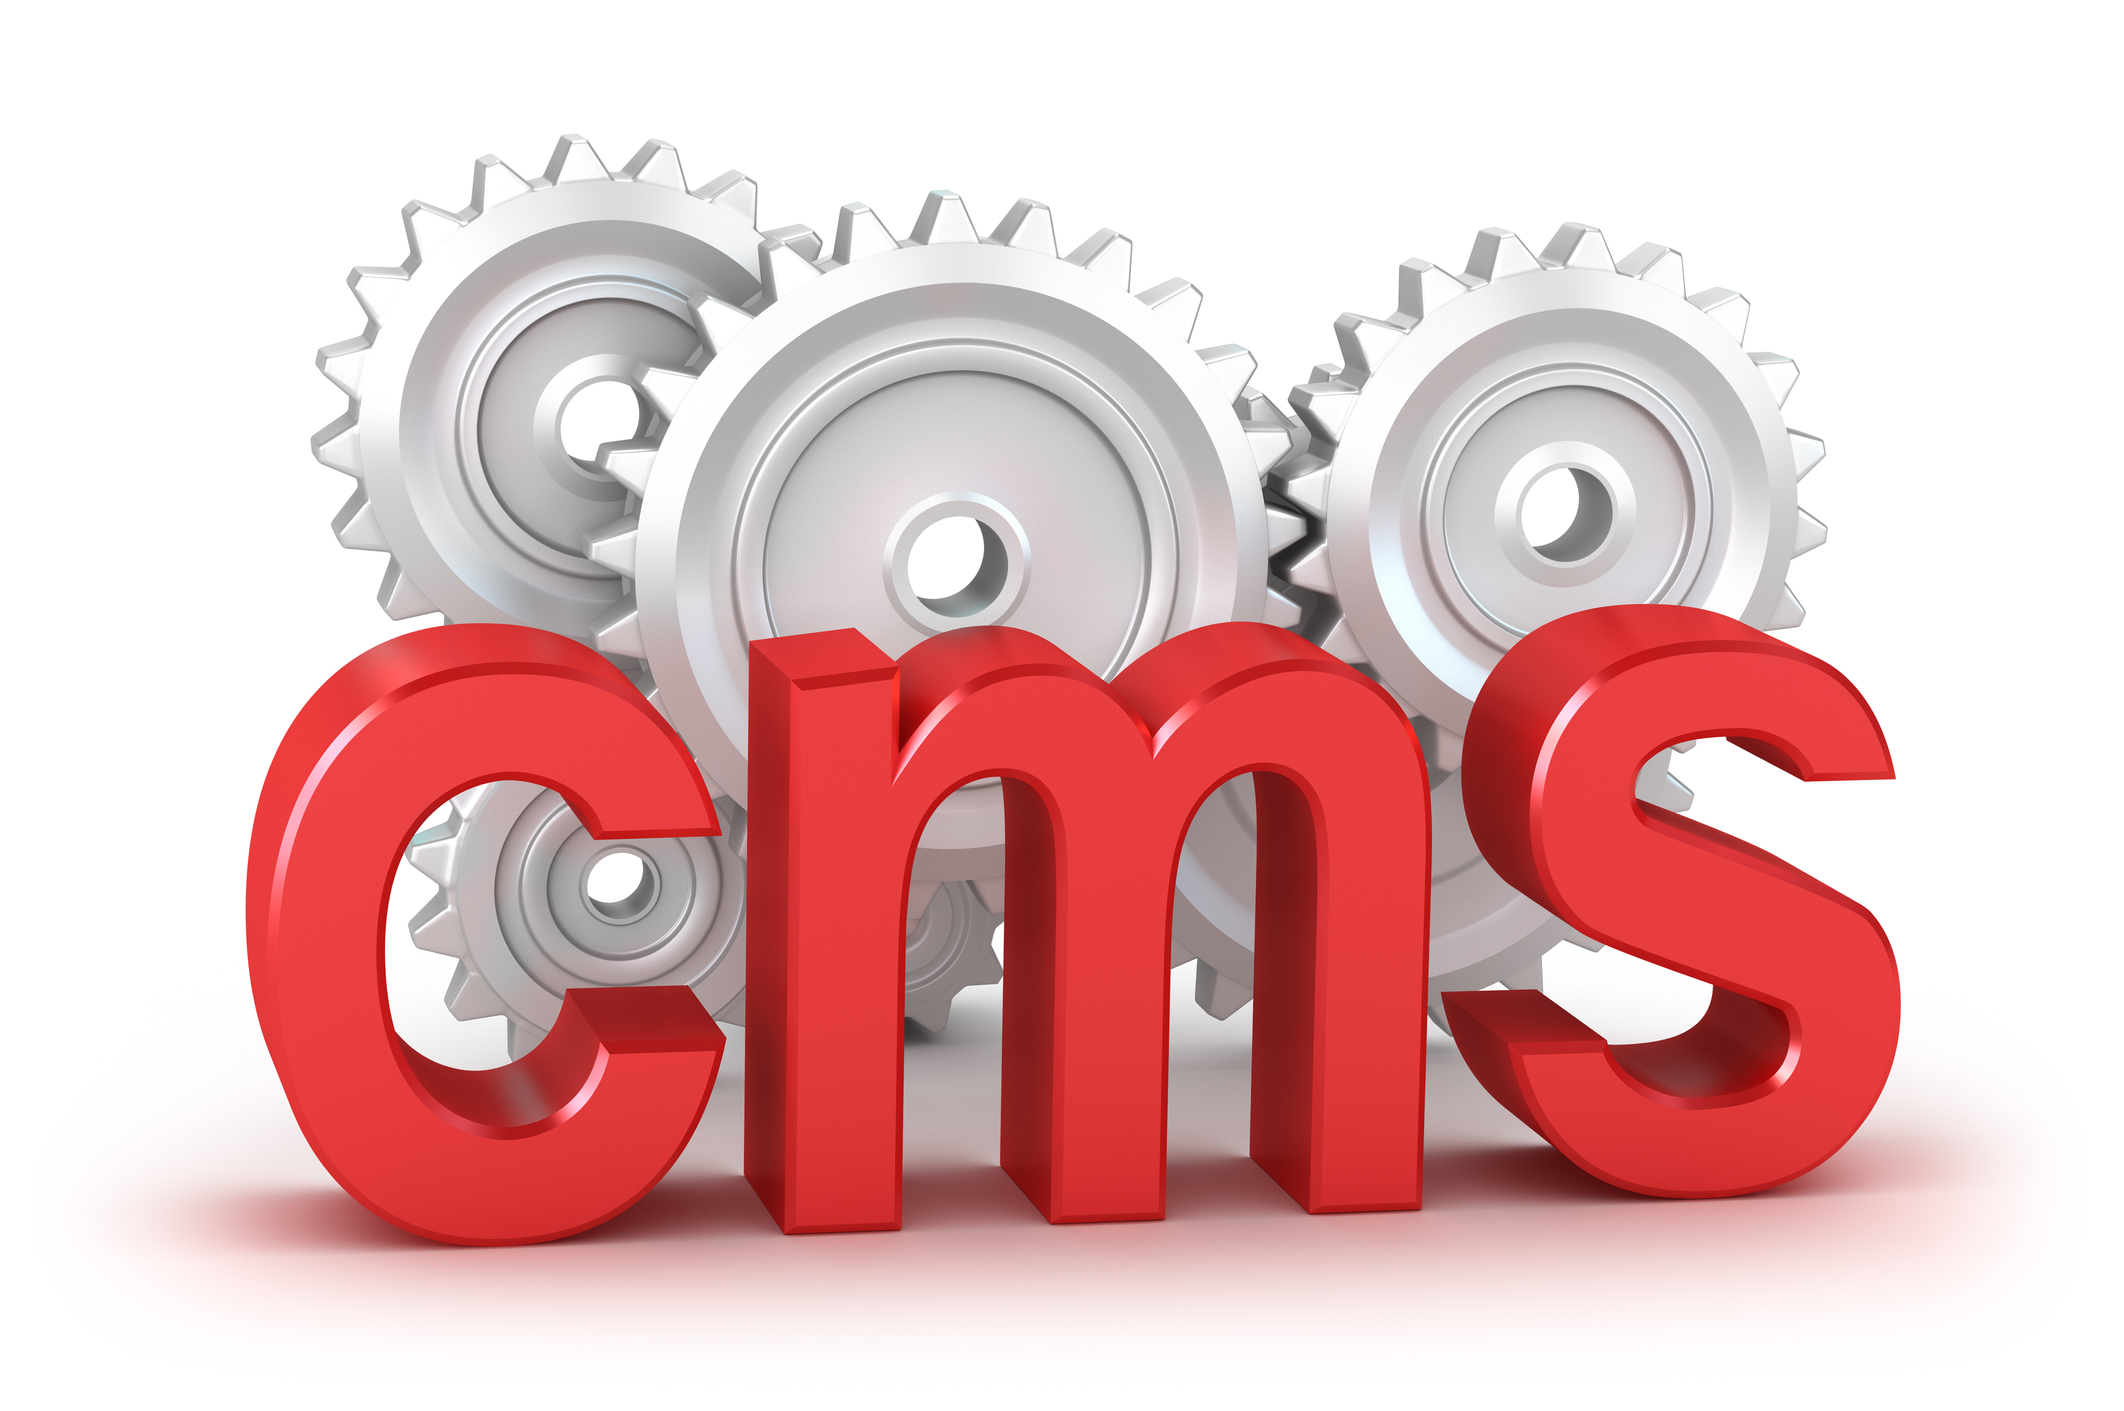 Cms church management system